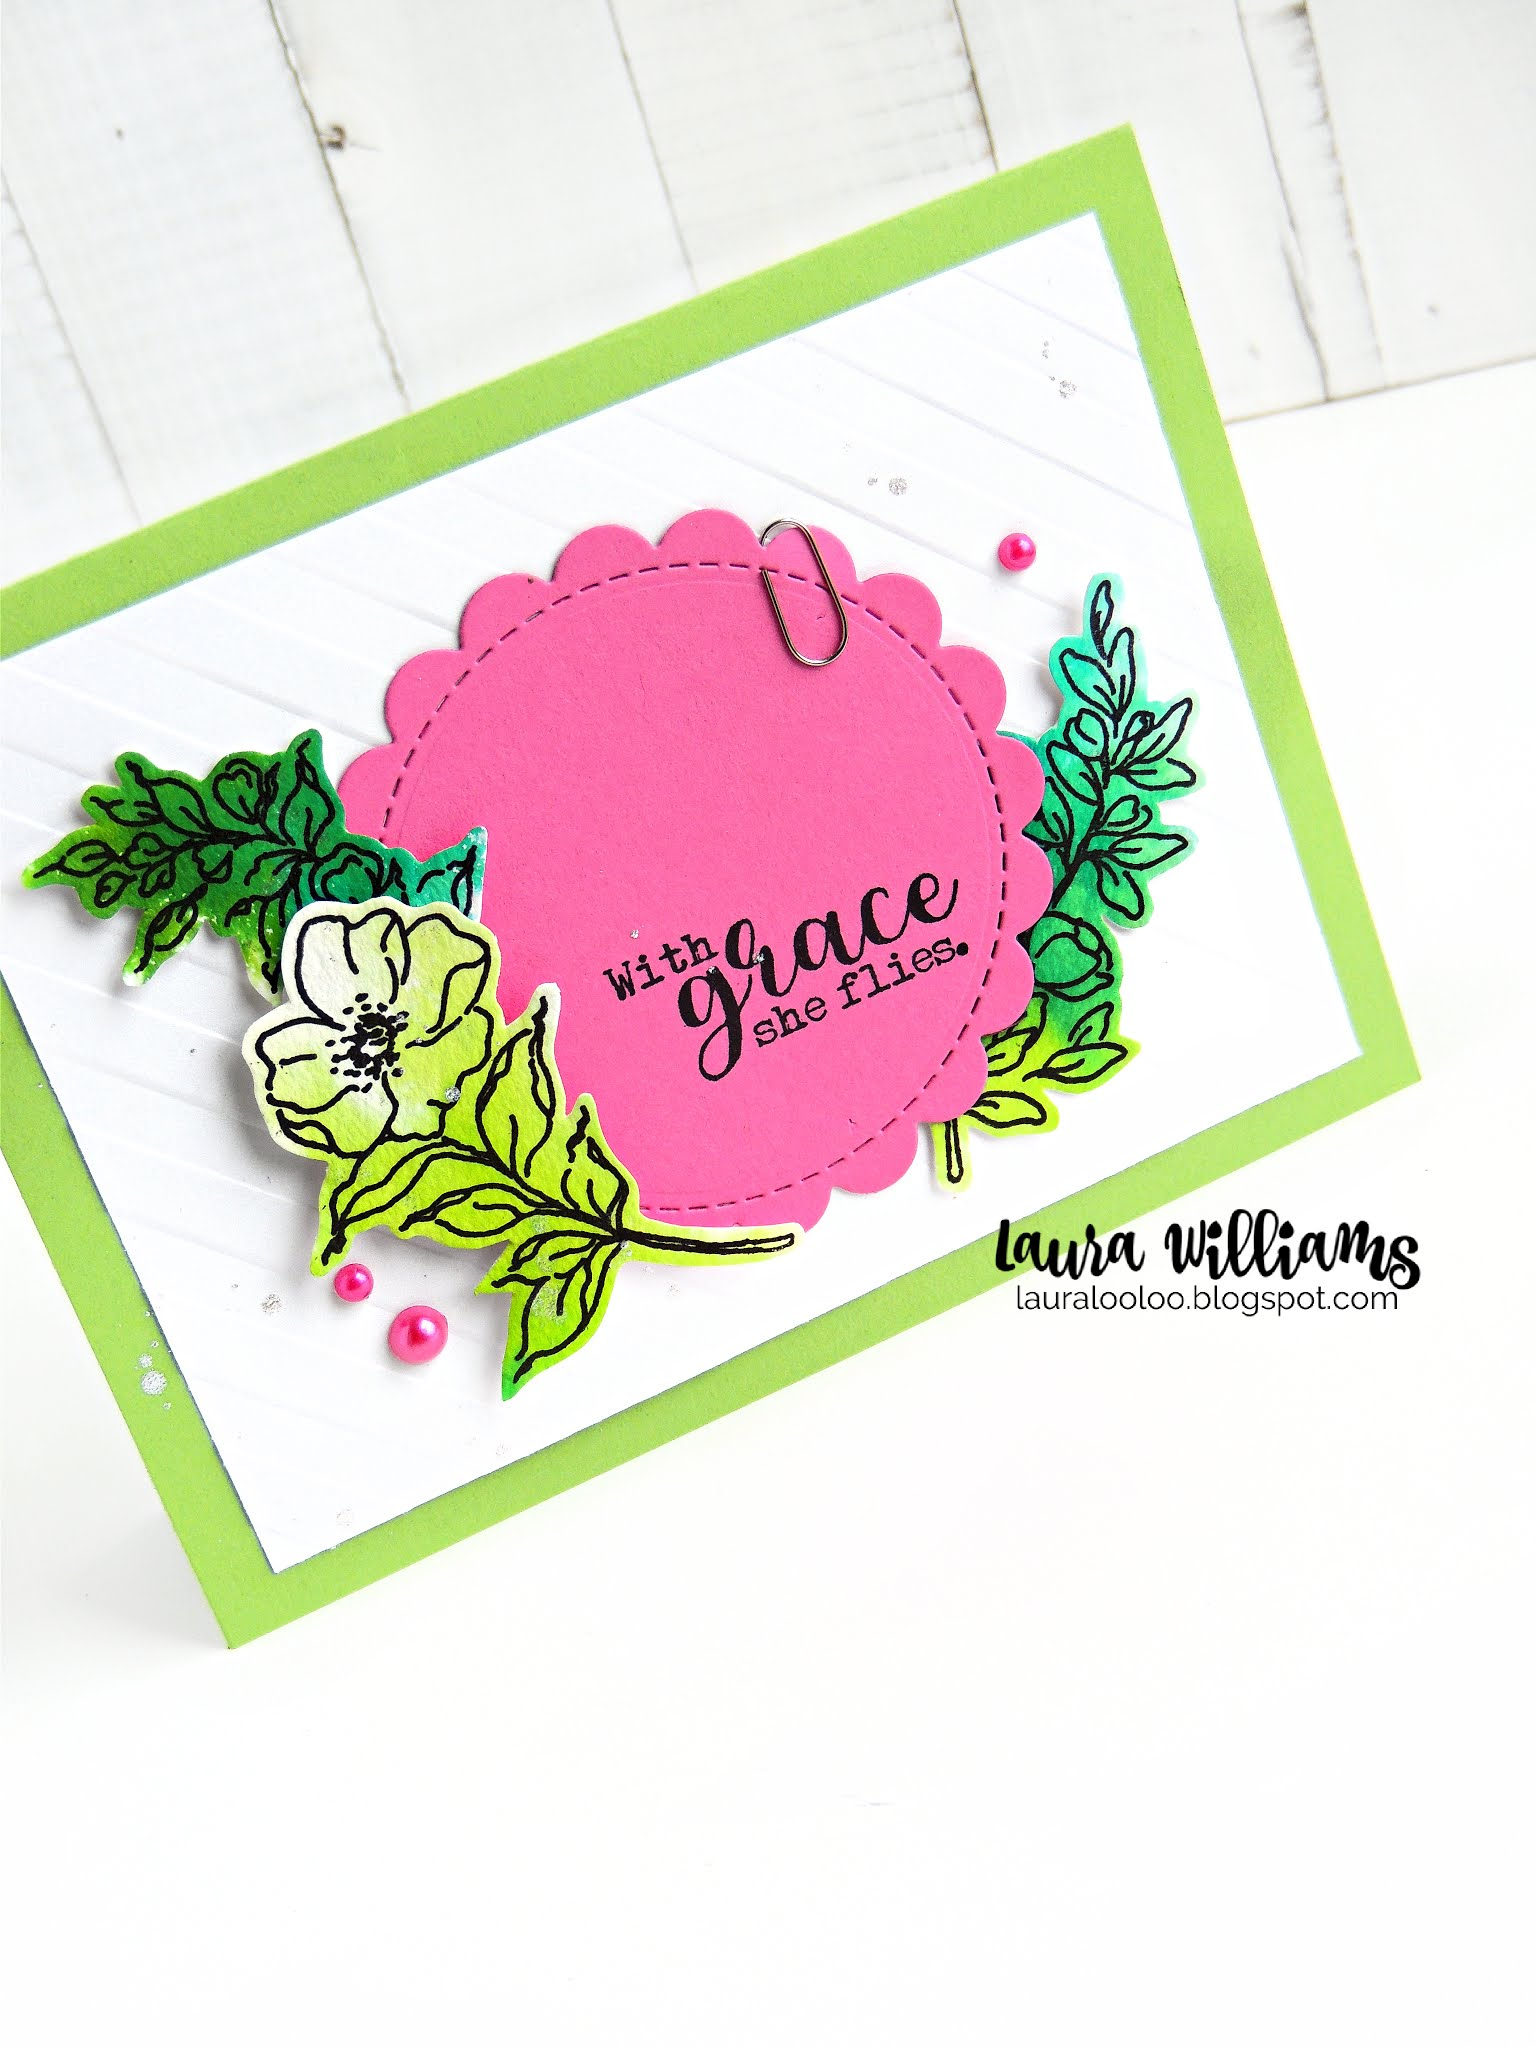 Make a colorful floral card to encourage and inspire someone with the She Positives and Wild Rose Heart stamp sets from Impression Obsession. Handmade cards are so much fun to make with rubber stamps, clear stamps, and die cutting. Visit my blog for details about this card set and so many more cardmaking ideas!